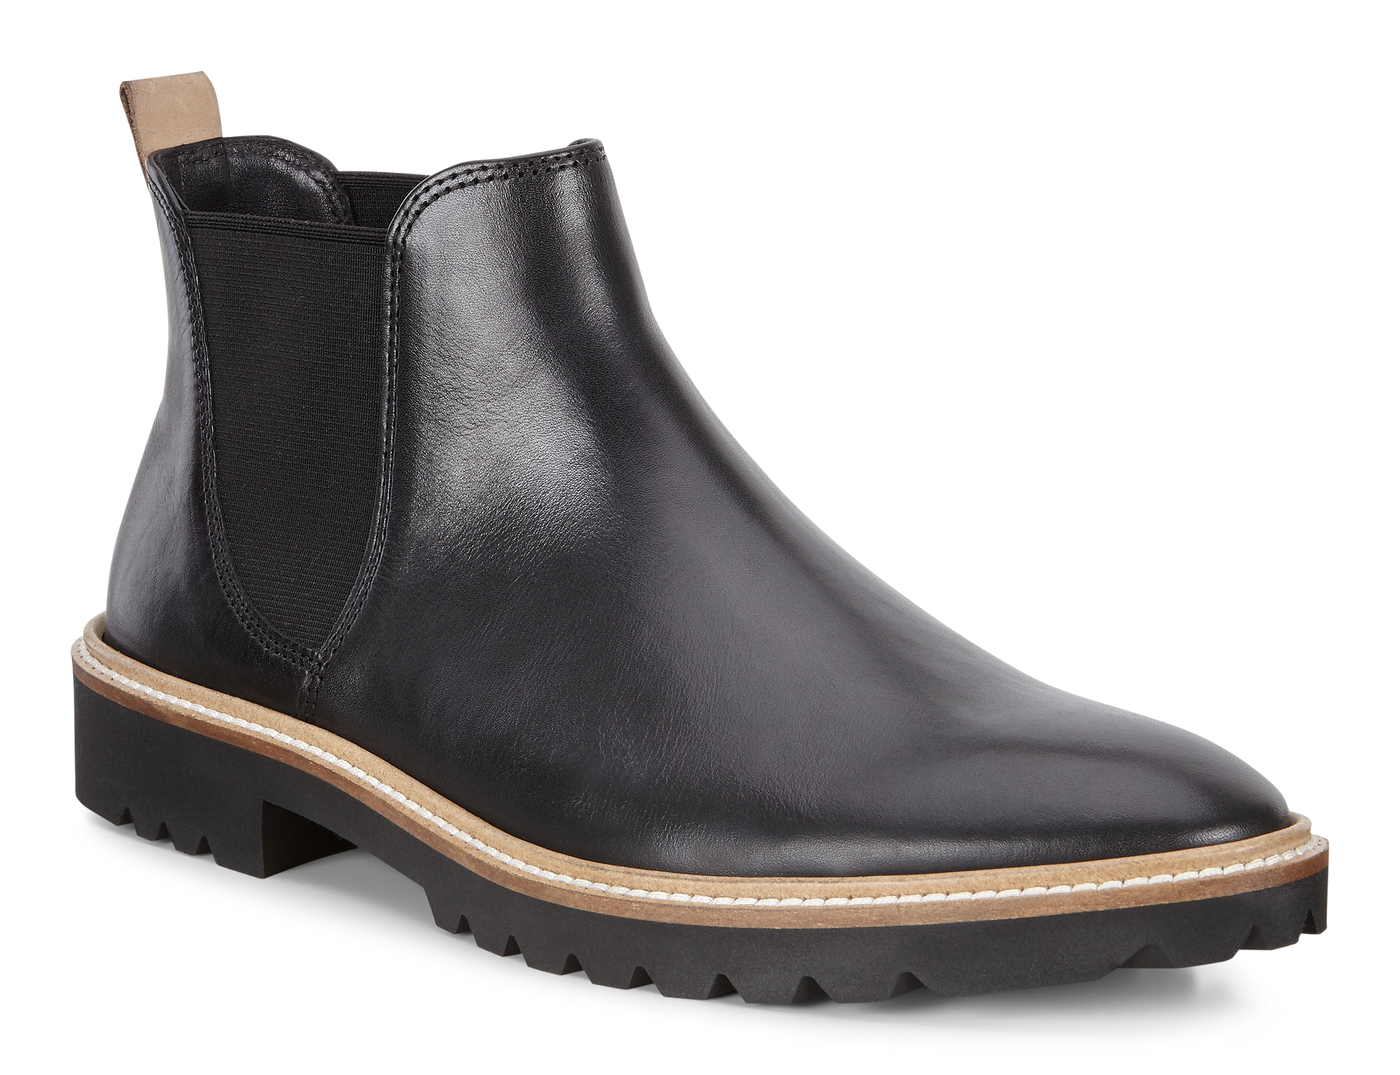 ECCO INCISE TAILORED Ankle Boo